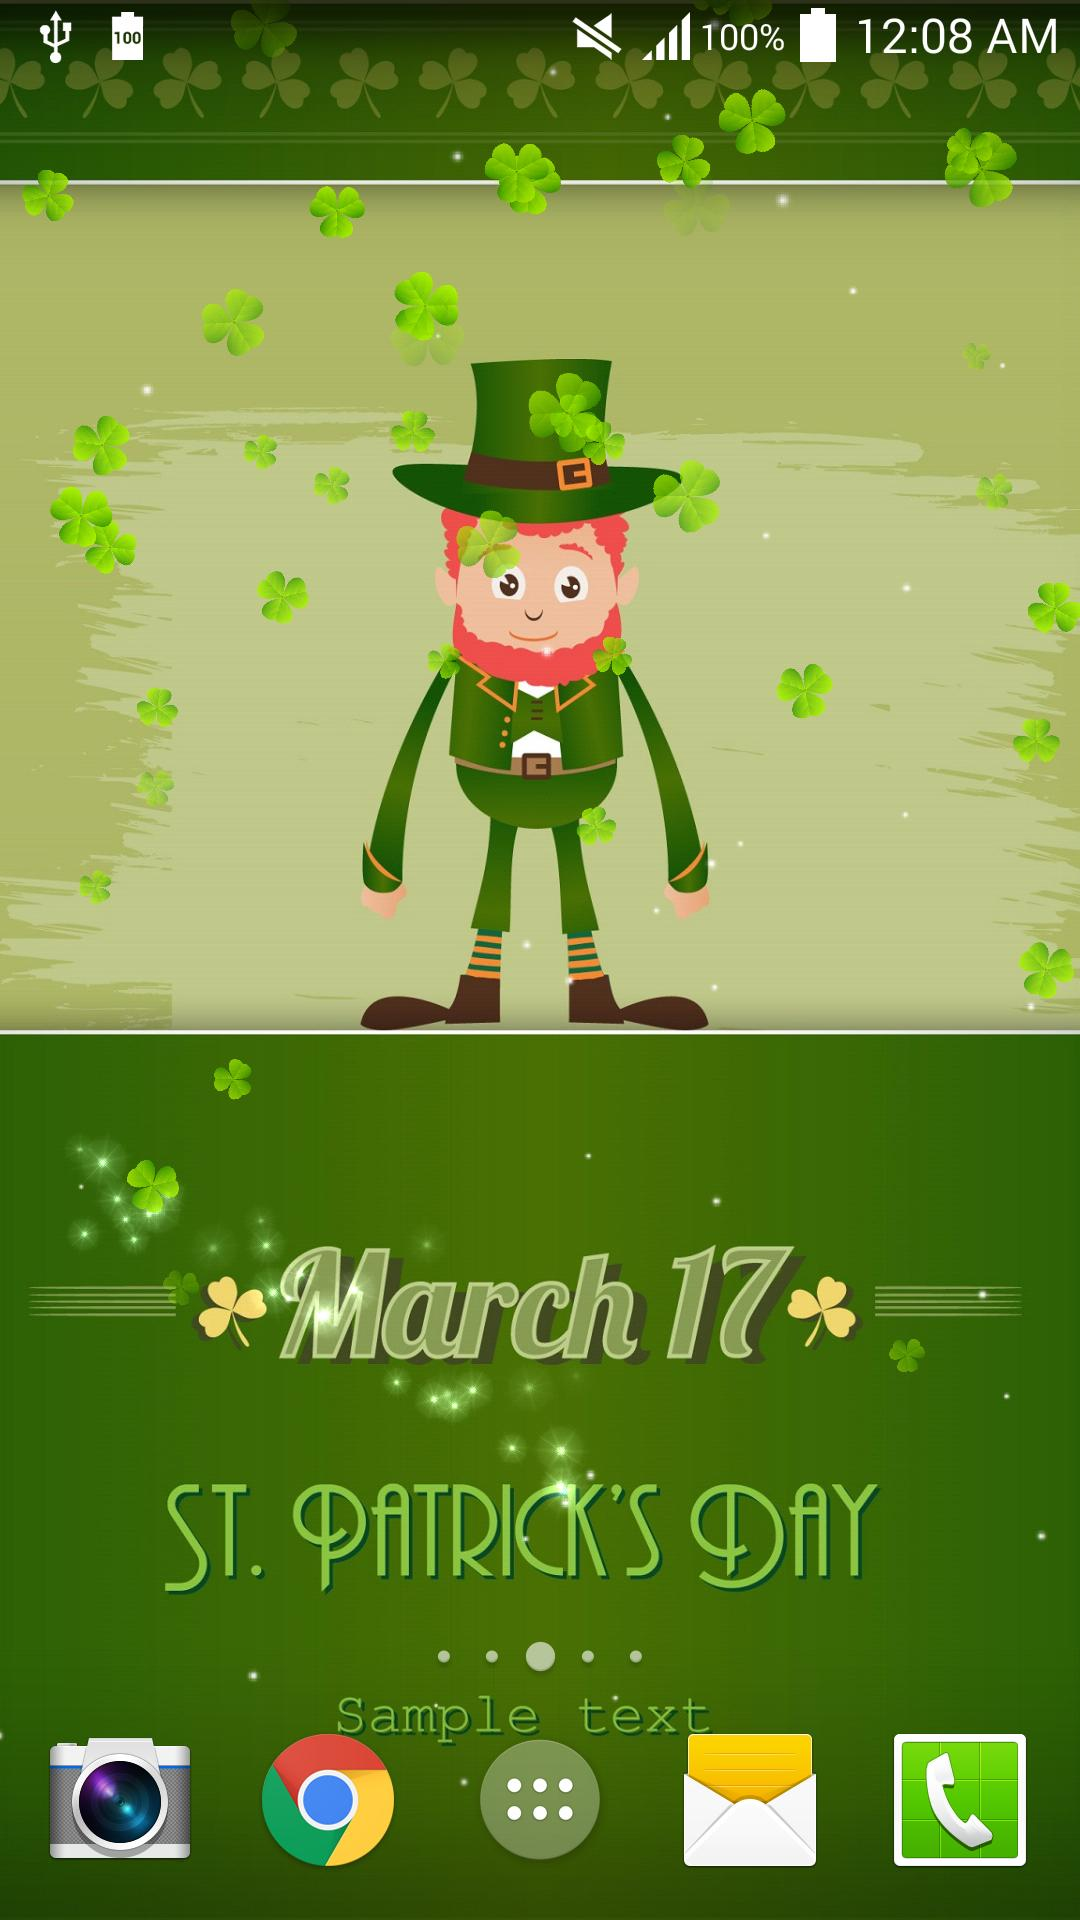 St Patricks Day Live Wallpaper For Android Apk Download